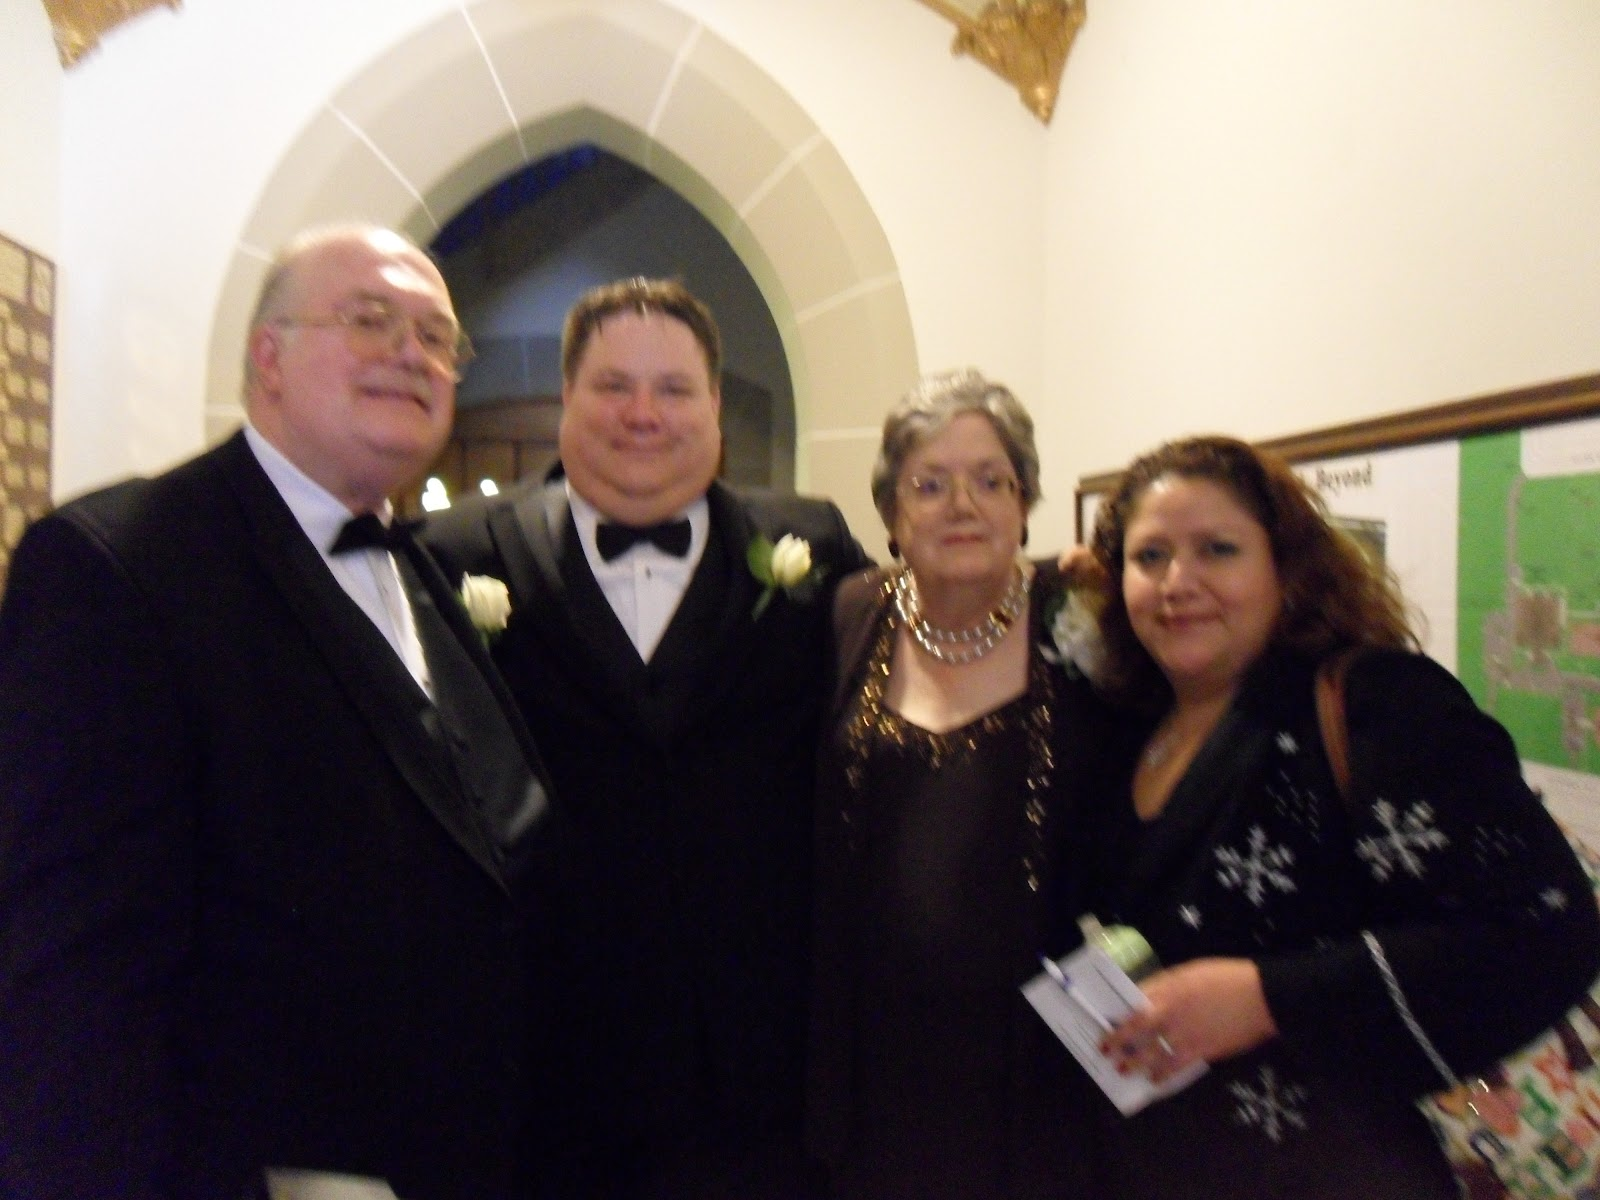 Our Wedding, photos by Rachel Perez - SAM_0178.JPG